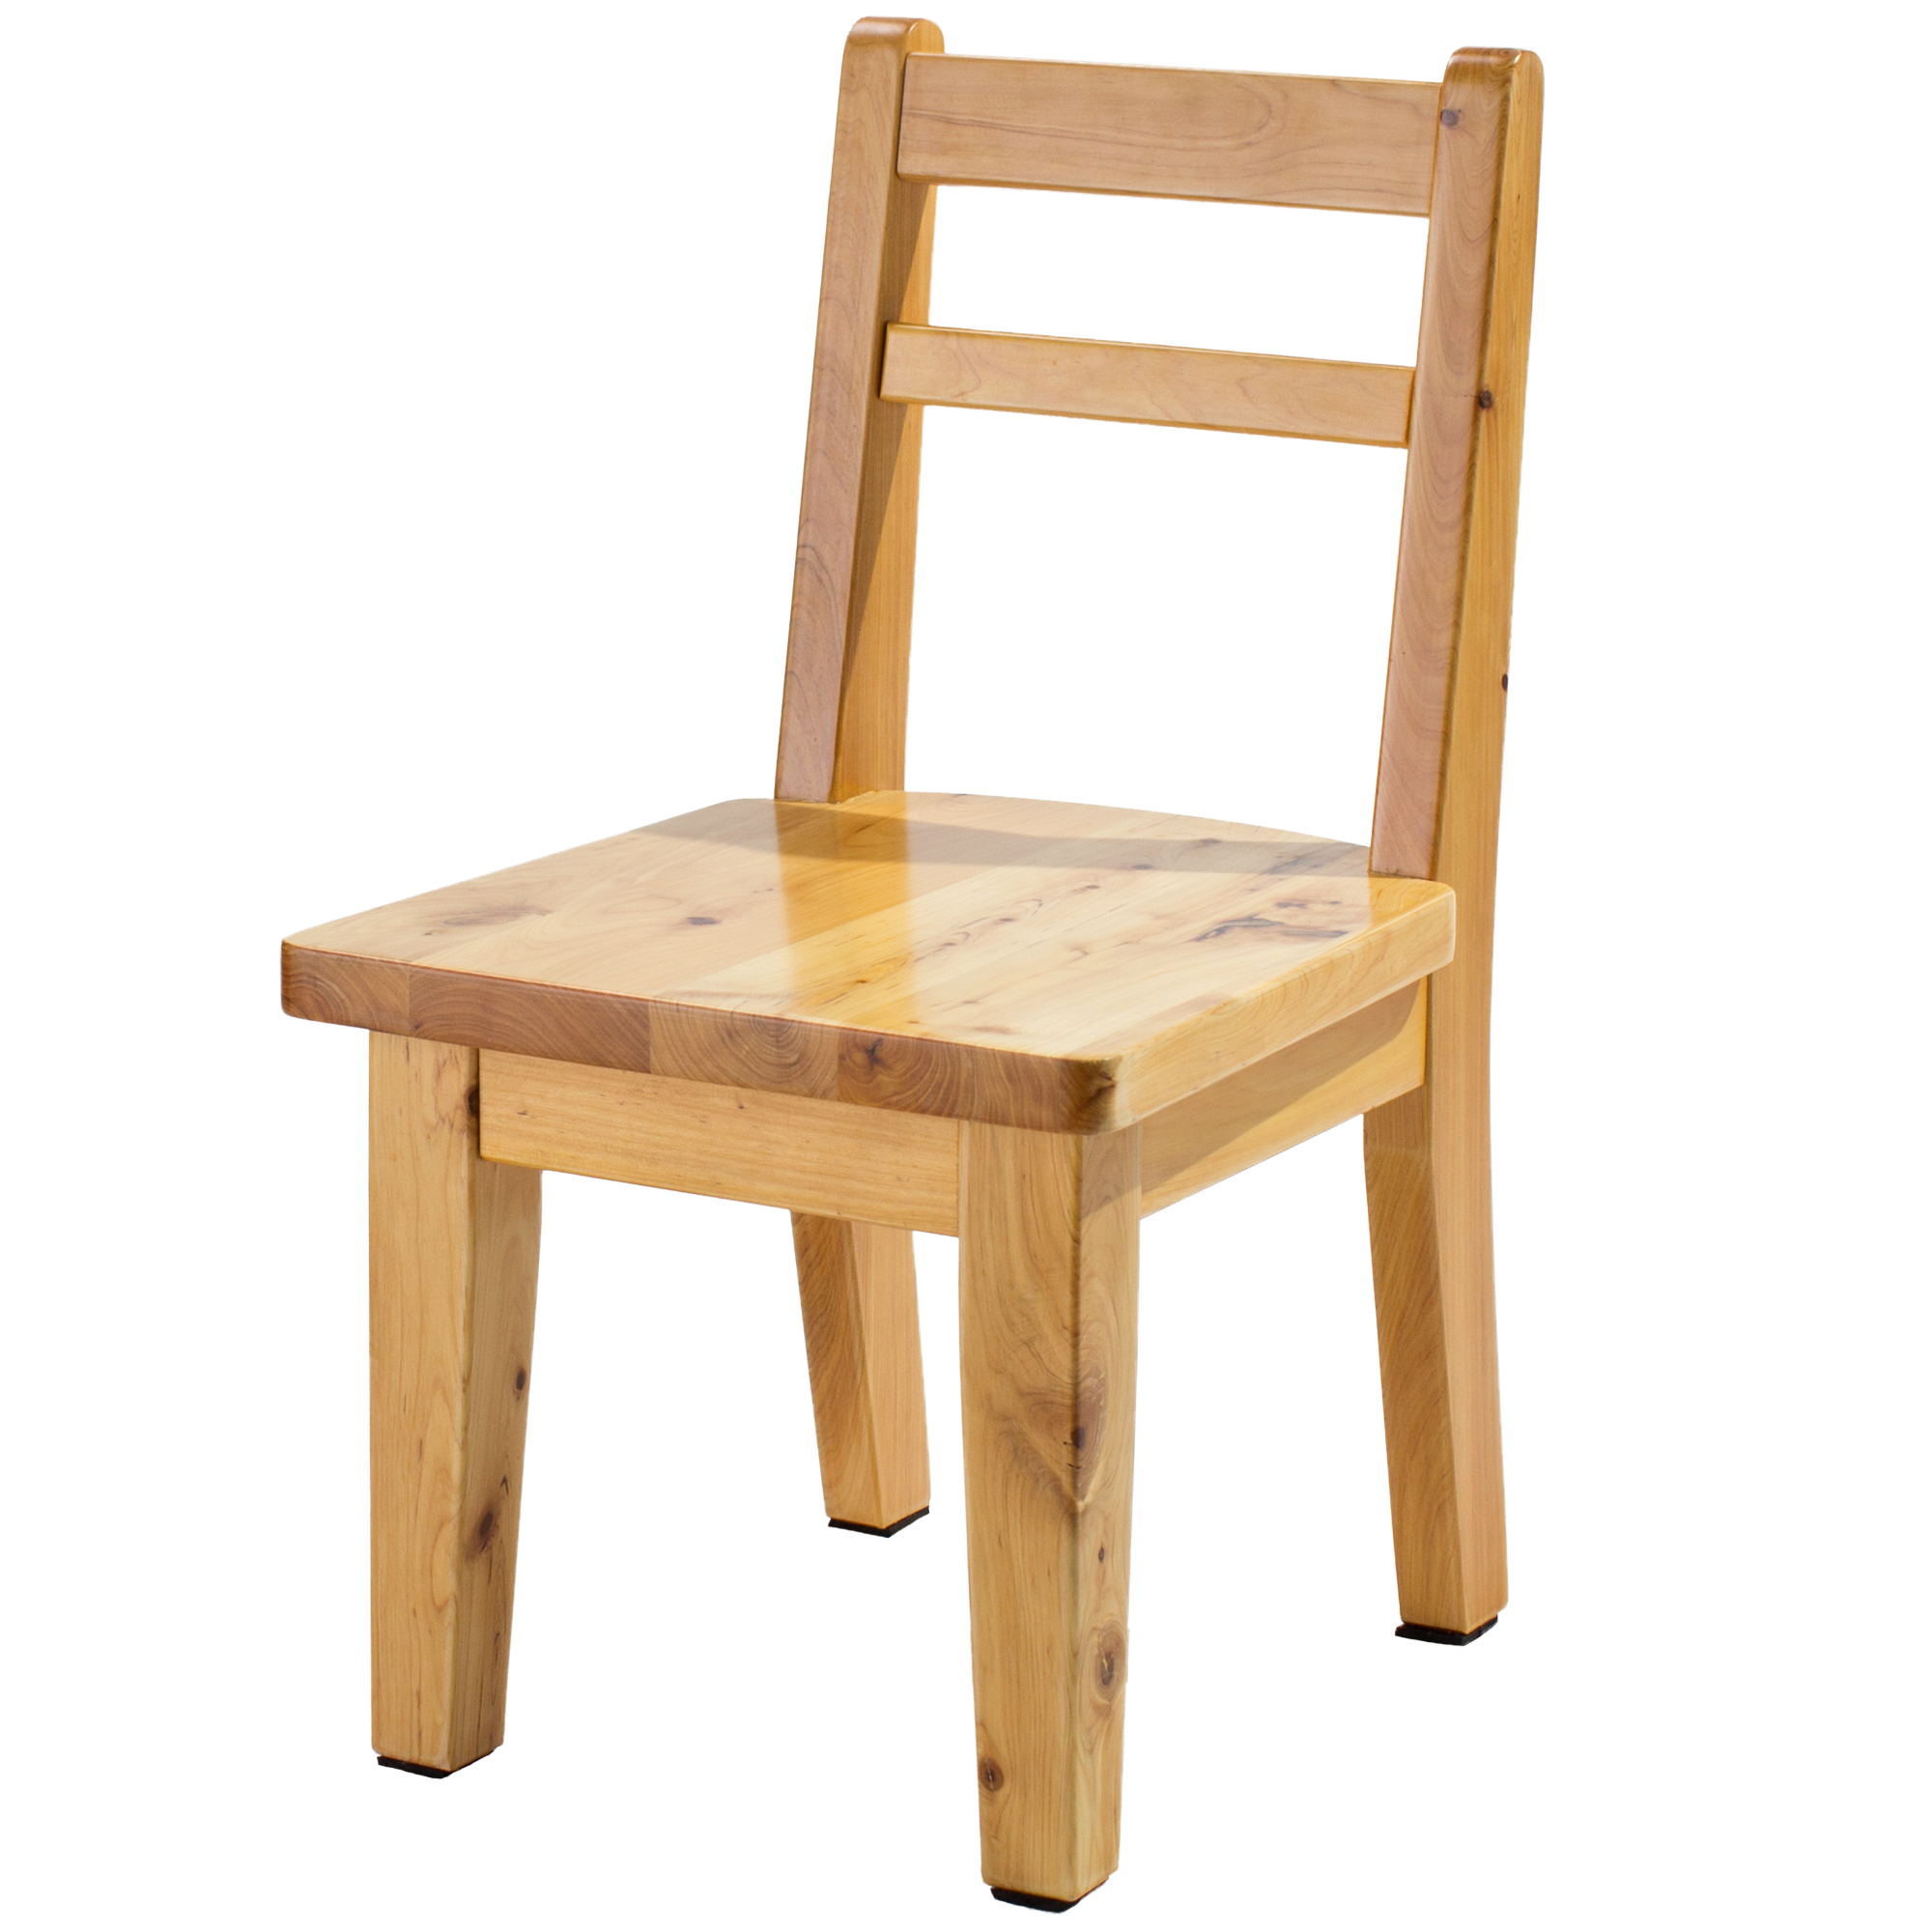 Wooden Chairs wooden chairs